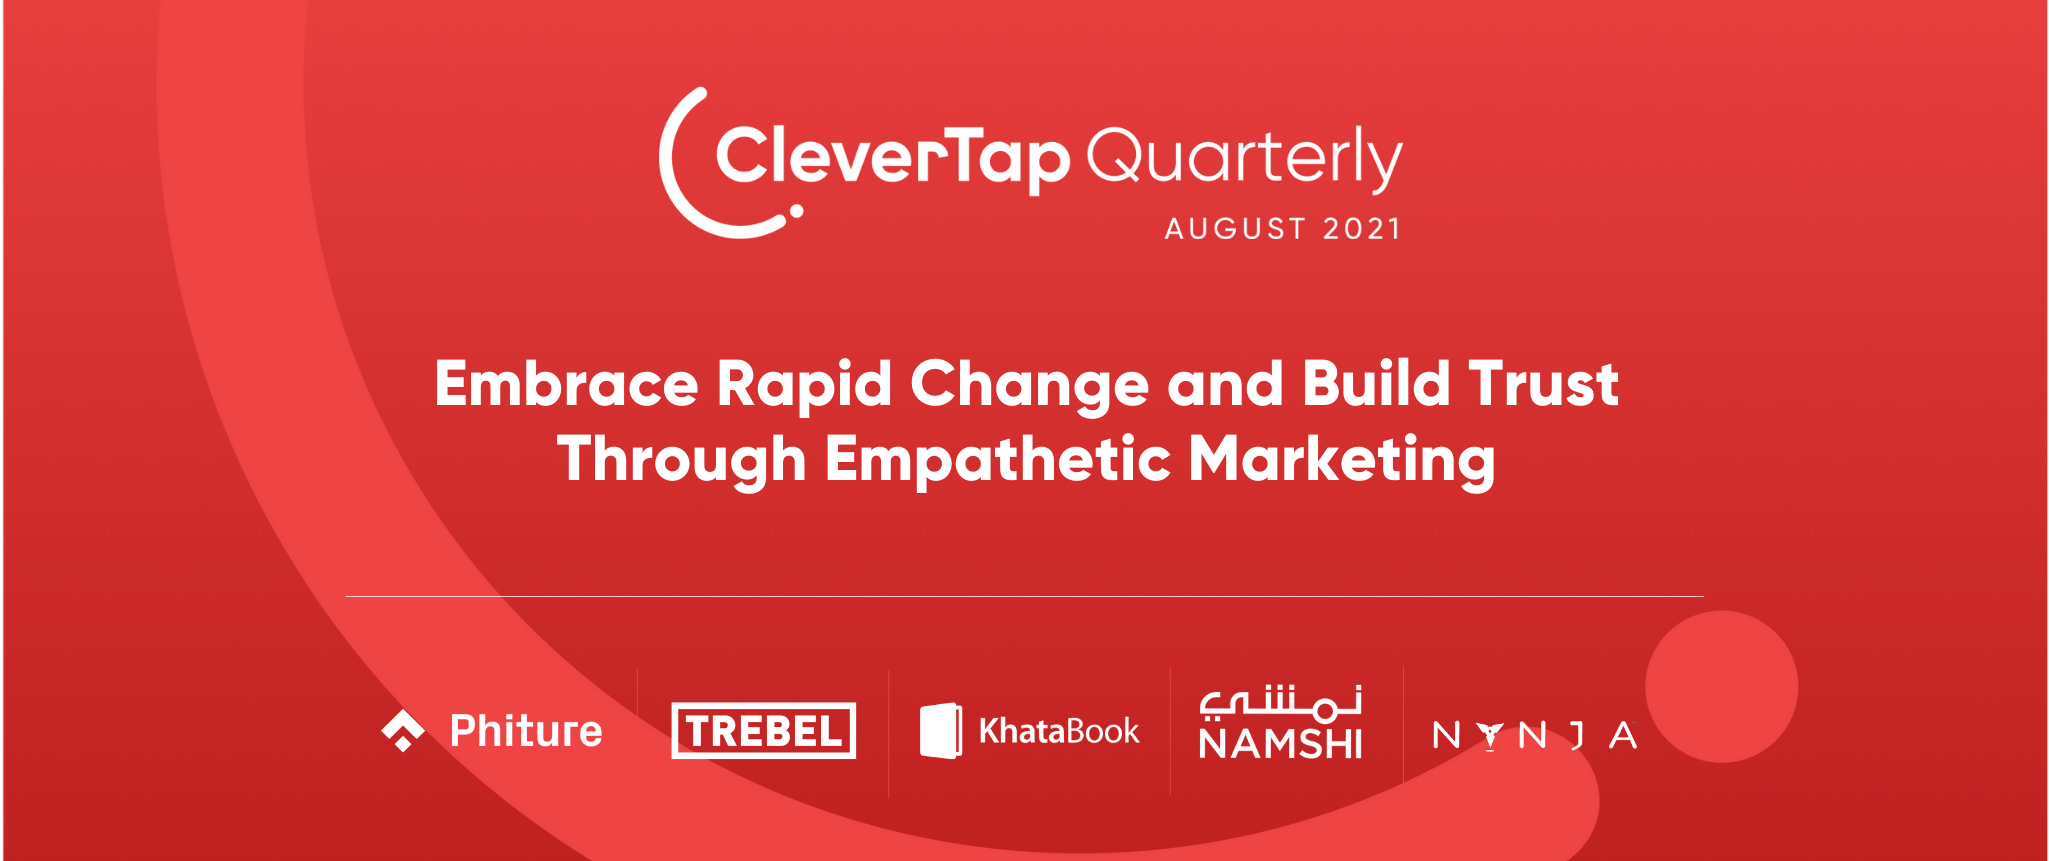 CleverTap Quarterly: Retention Experts Share How to Adapt Marketing To Consumers' Changing Work-Life Needs